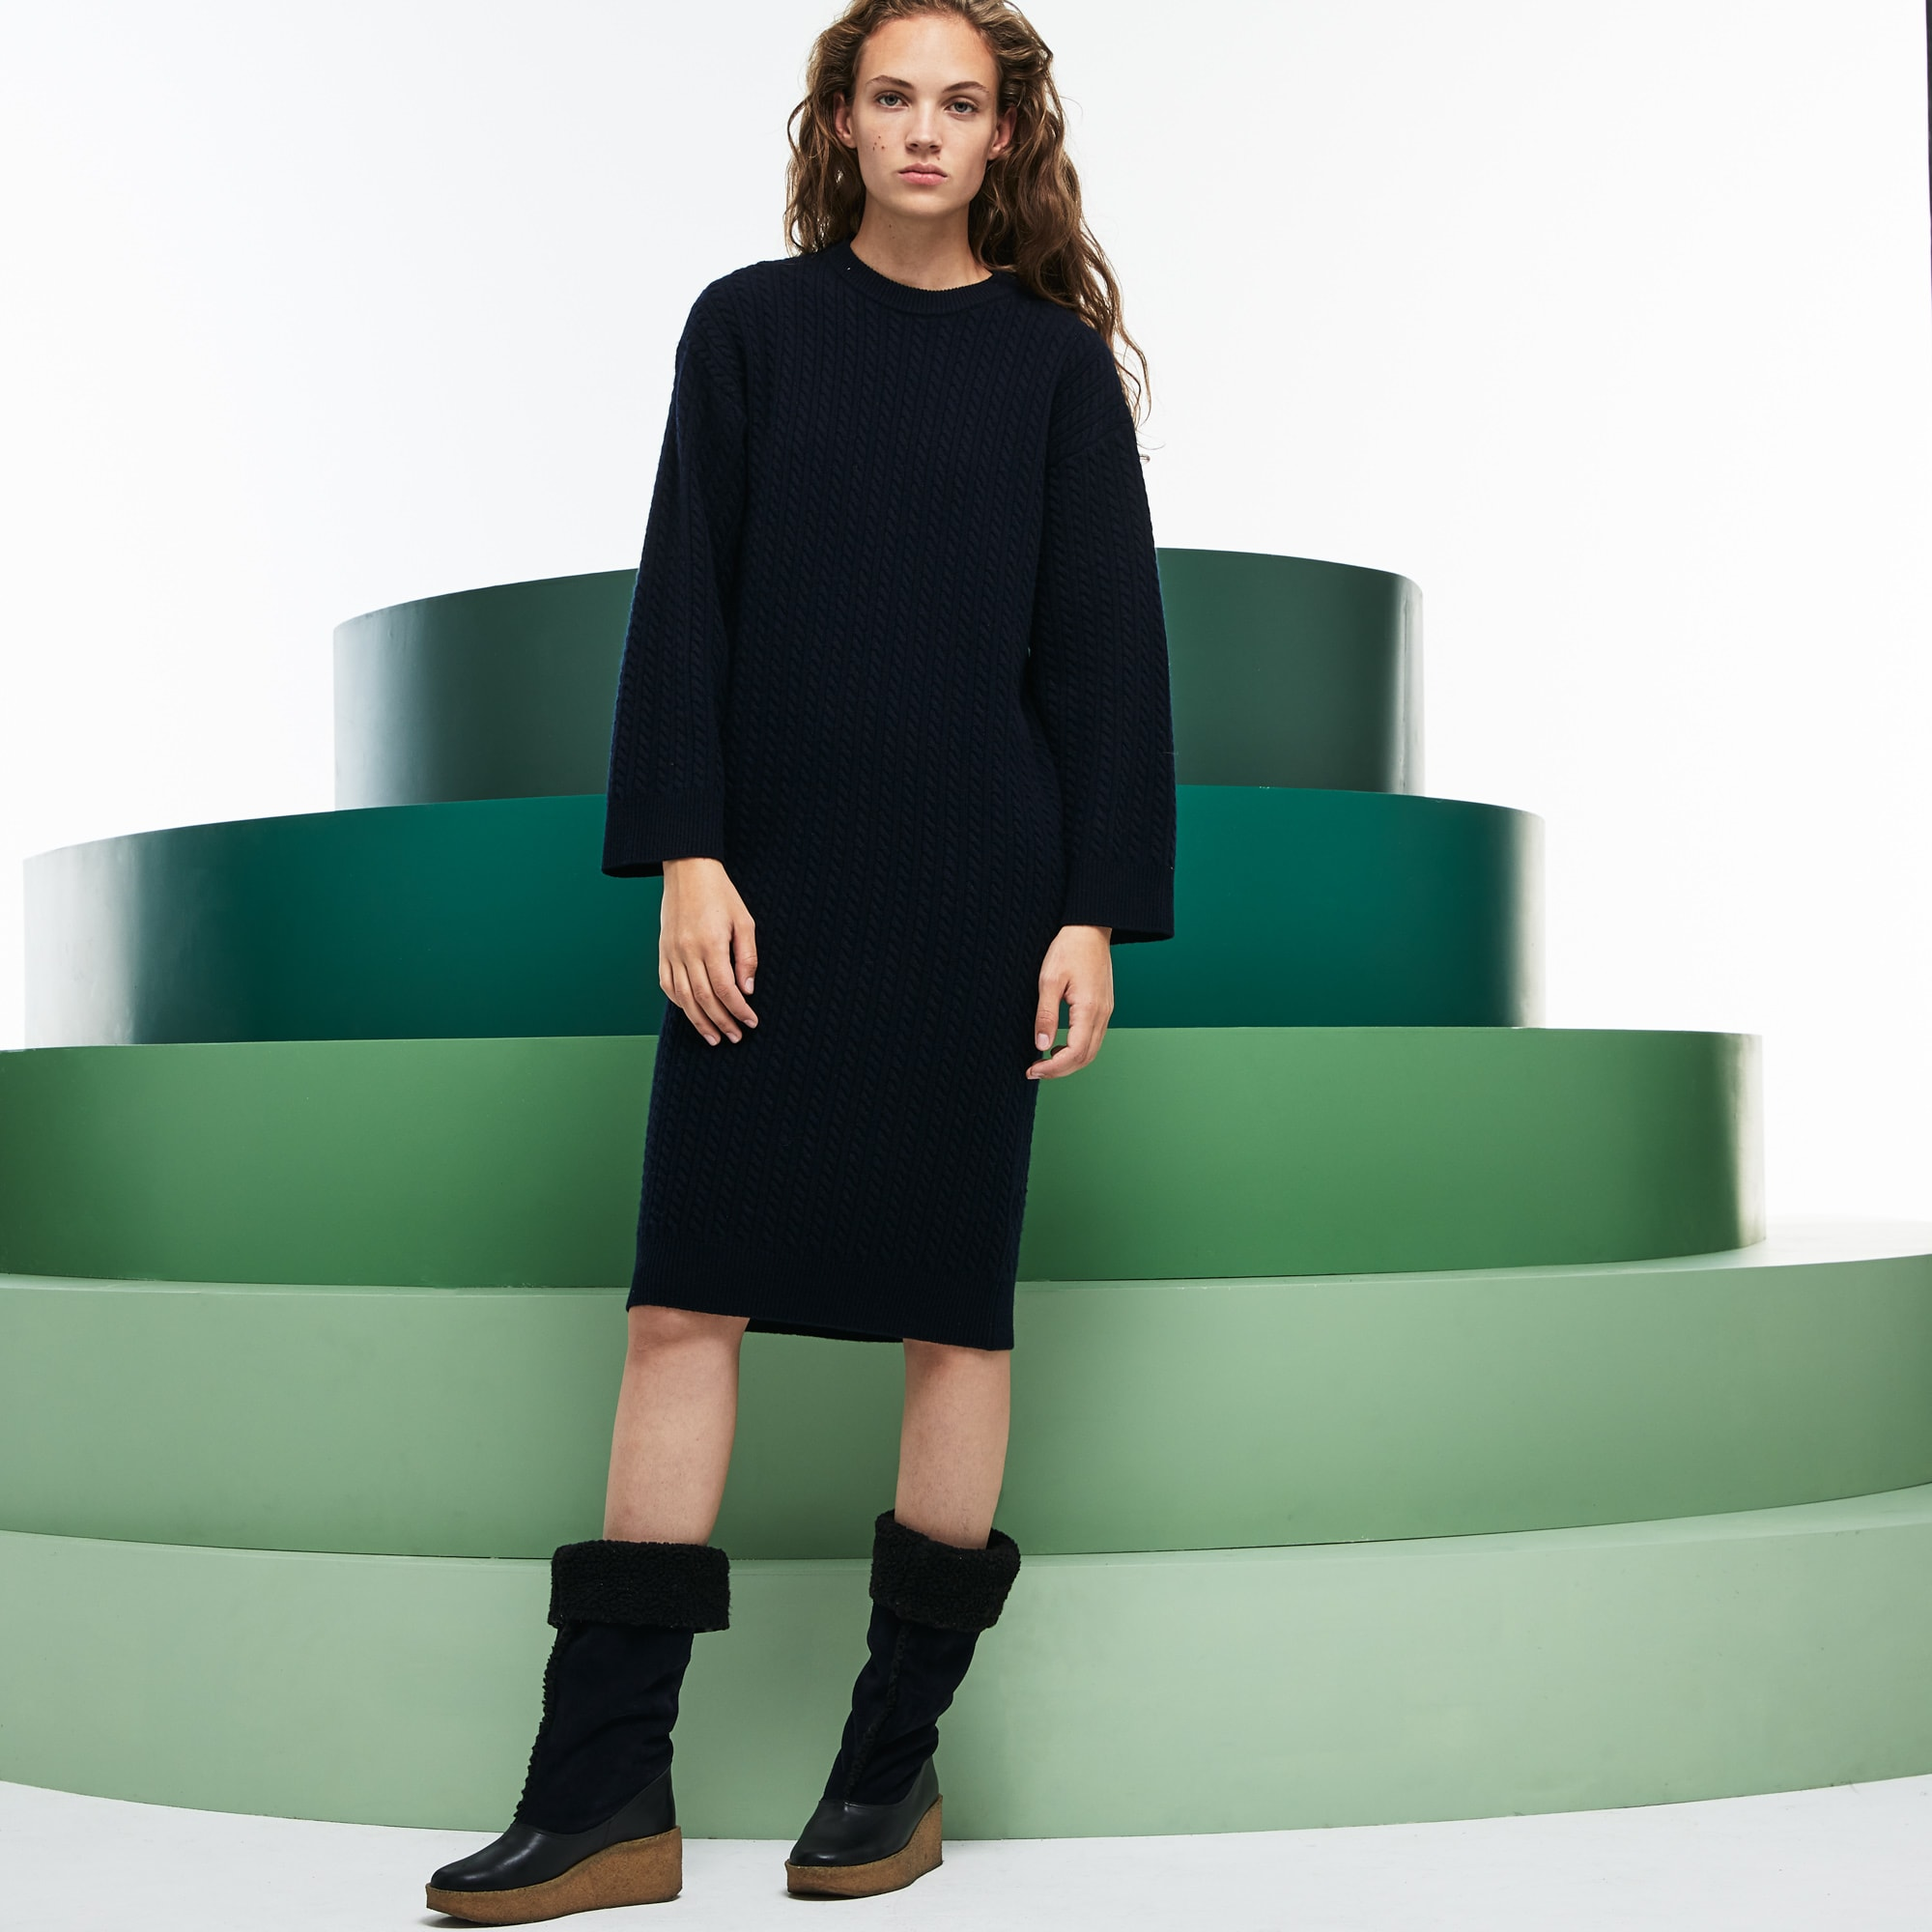 Womens Fashion Show Oversized Wool And Cashmere Sweater Dress Lacoste